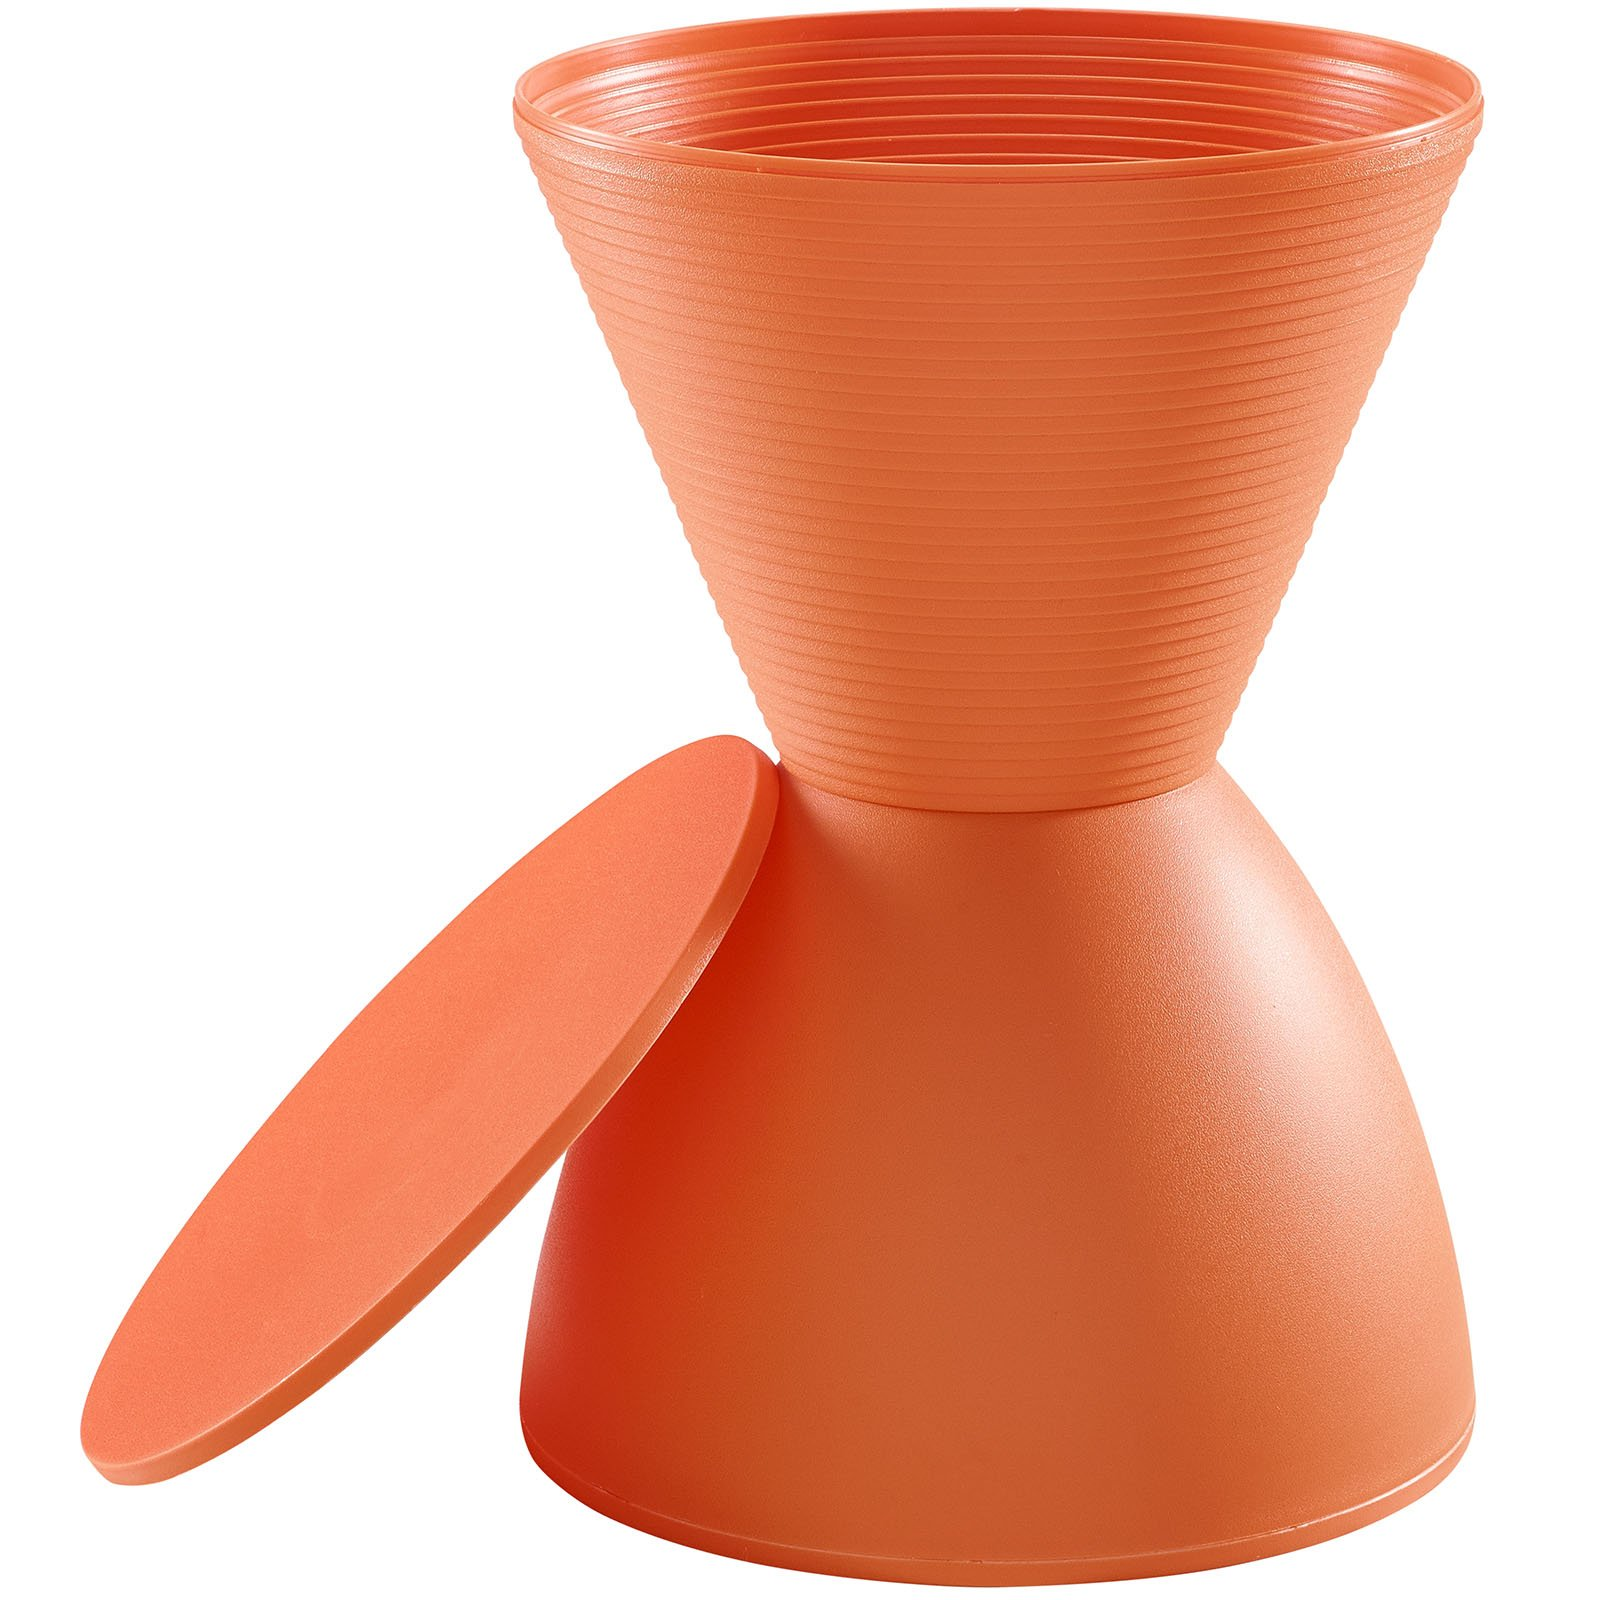 Modway Haste Contemporary Modern Hourglass Accent Stool in Orange